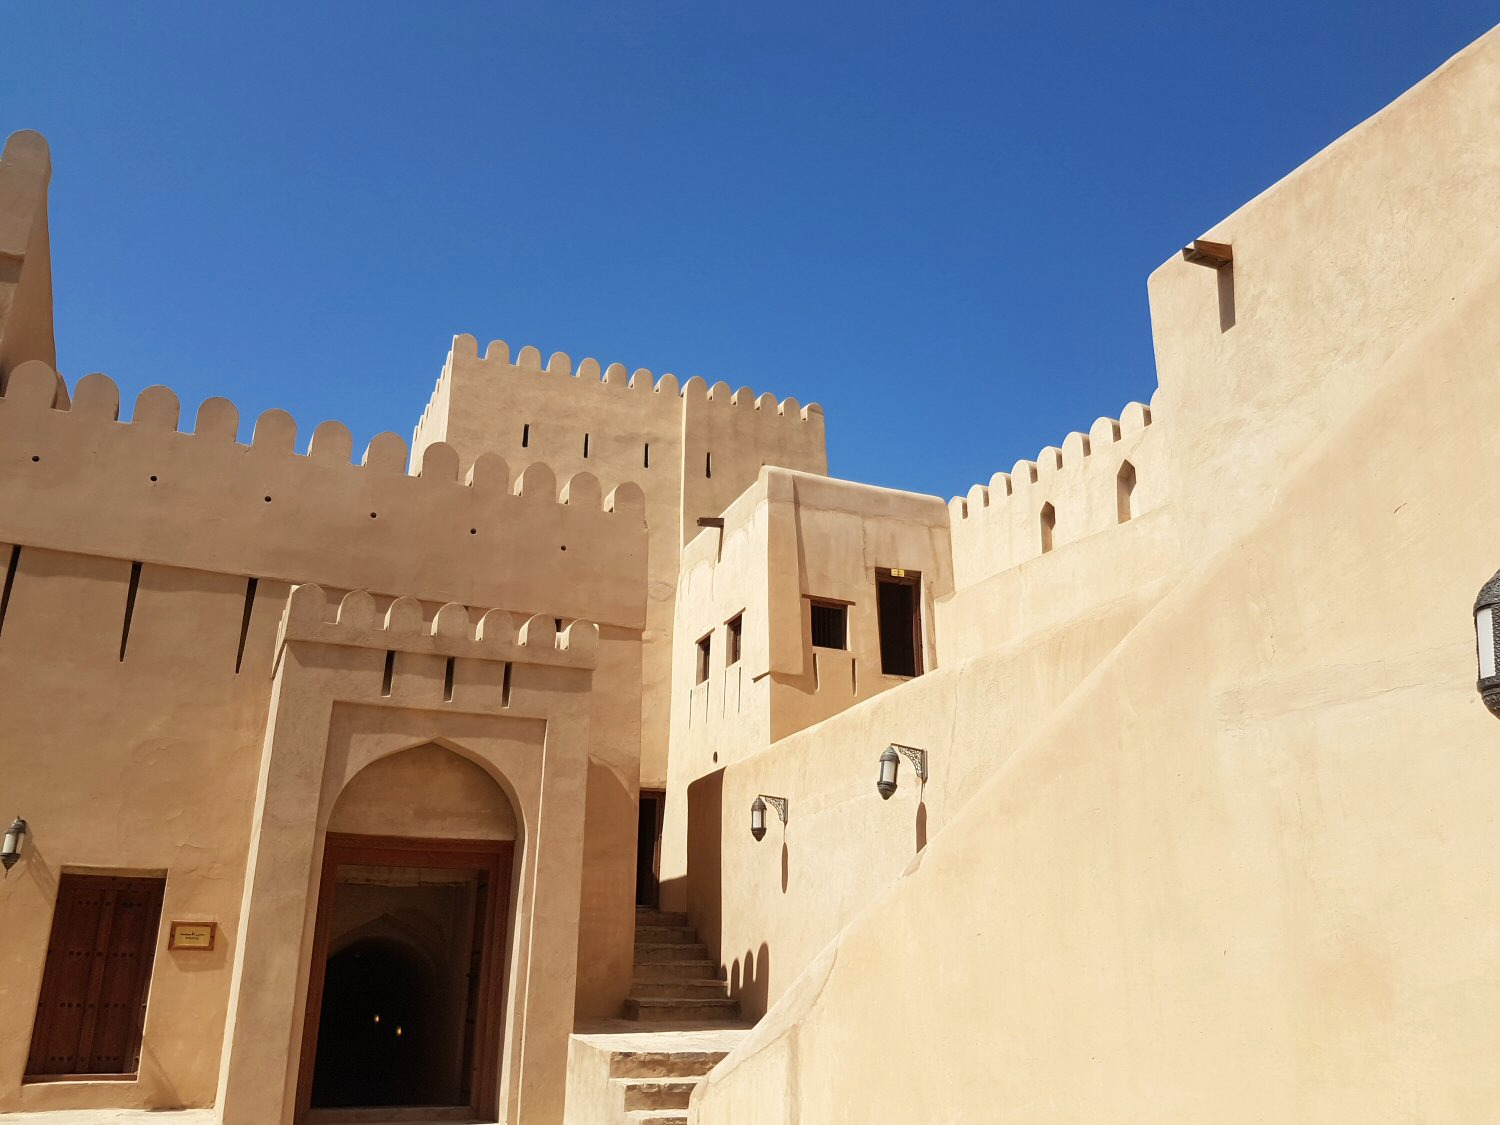 A view of the crenelated sand coloured buildings in Nizwa fort in Oman against a blue sky- my nine reasons to visit Oman with kids